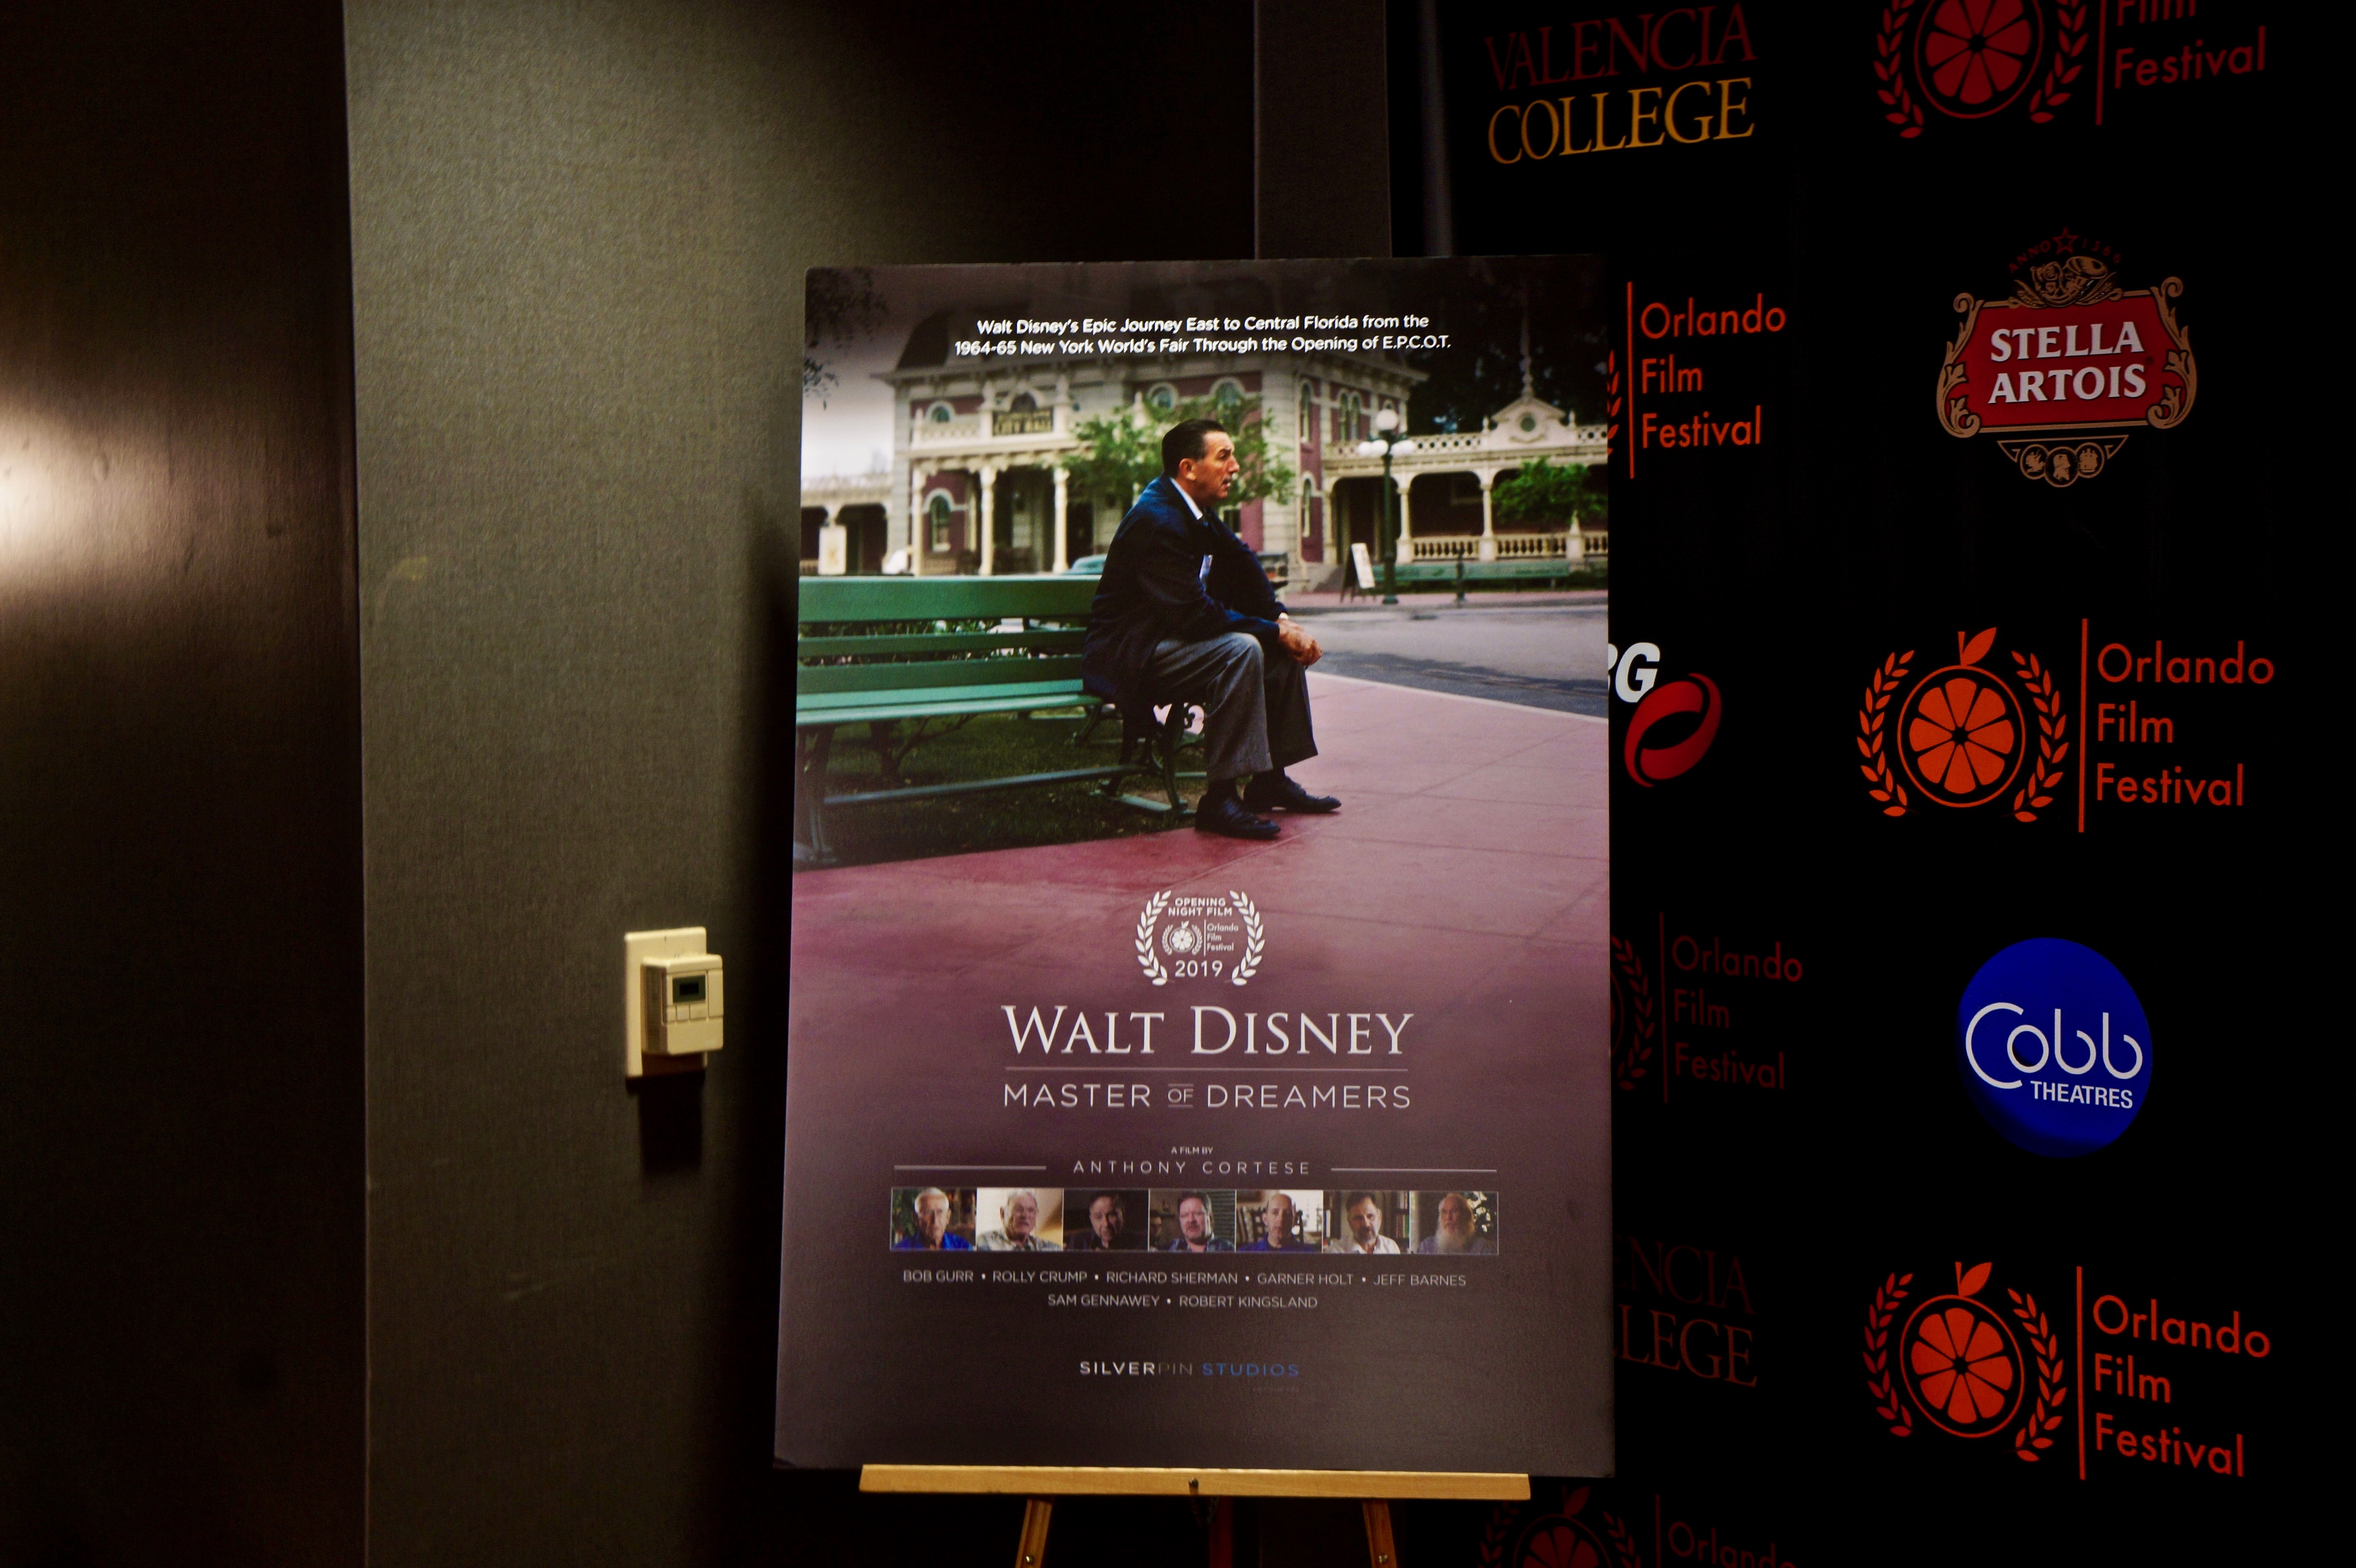 'Walt Disney - Master of Dreamers: The Road to Epcot' documentary poster at Orlando Film Festival Thursday, October 17, 2019. Photo: Leyton Blackwell/Florida National News.